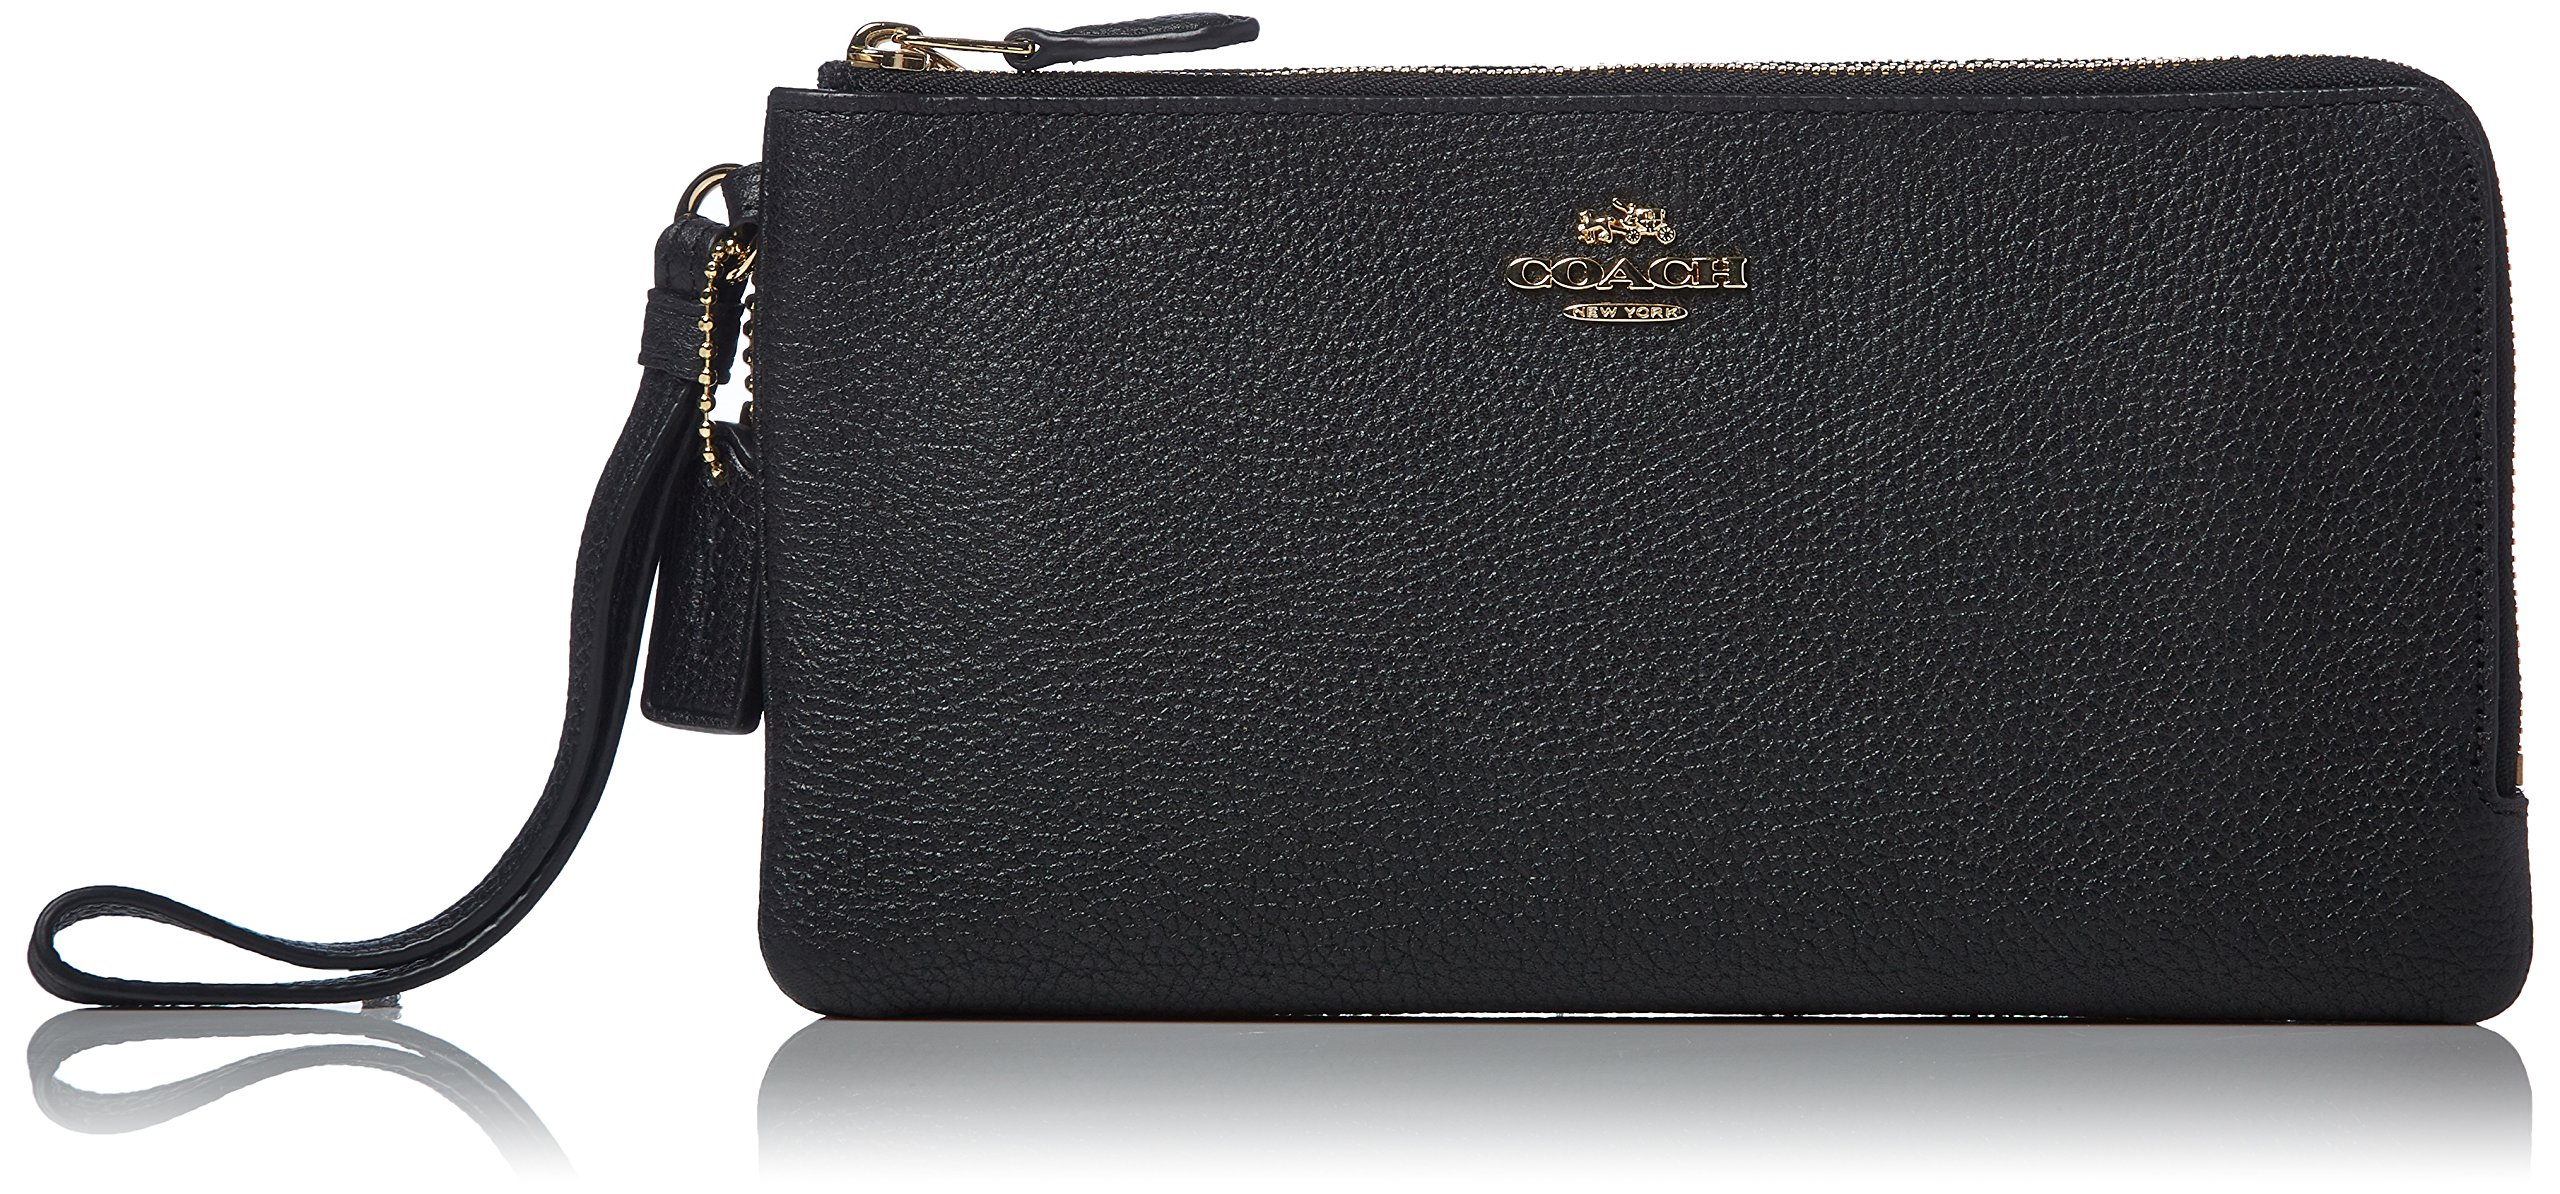 COACH Women's Polished Pebbled Double Zip Wallet LI/Black Checkbook Wallet by Coach